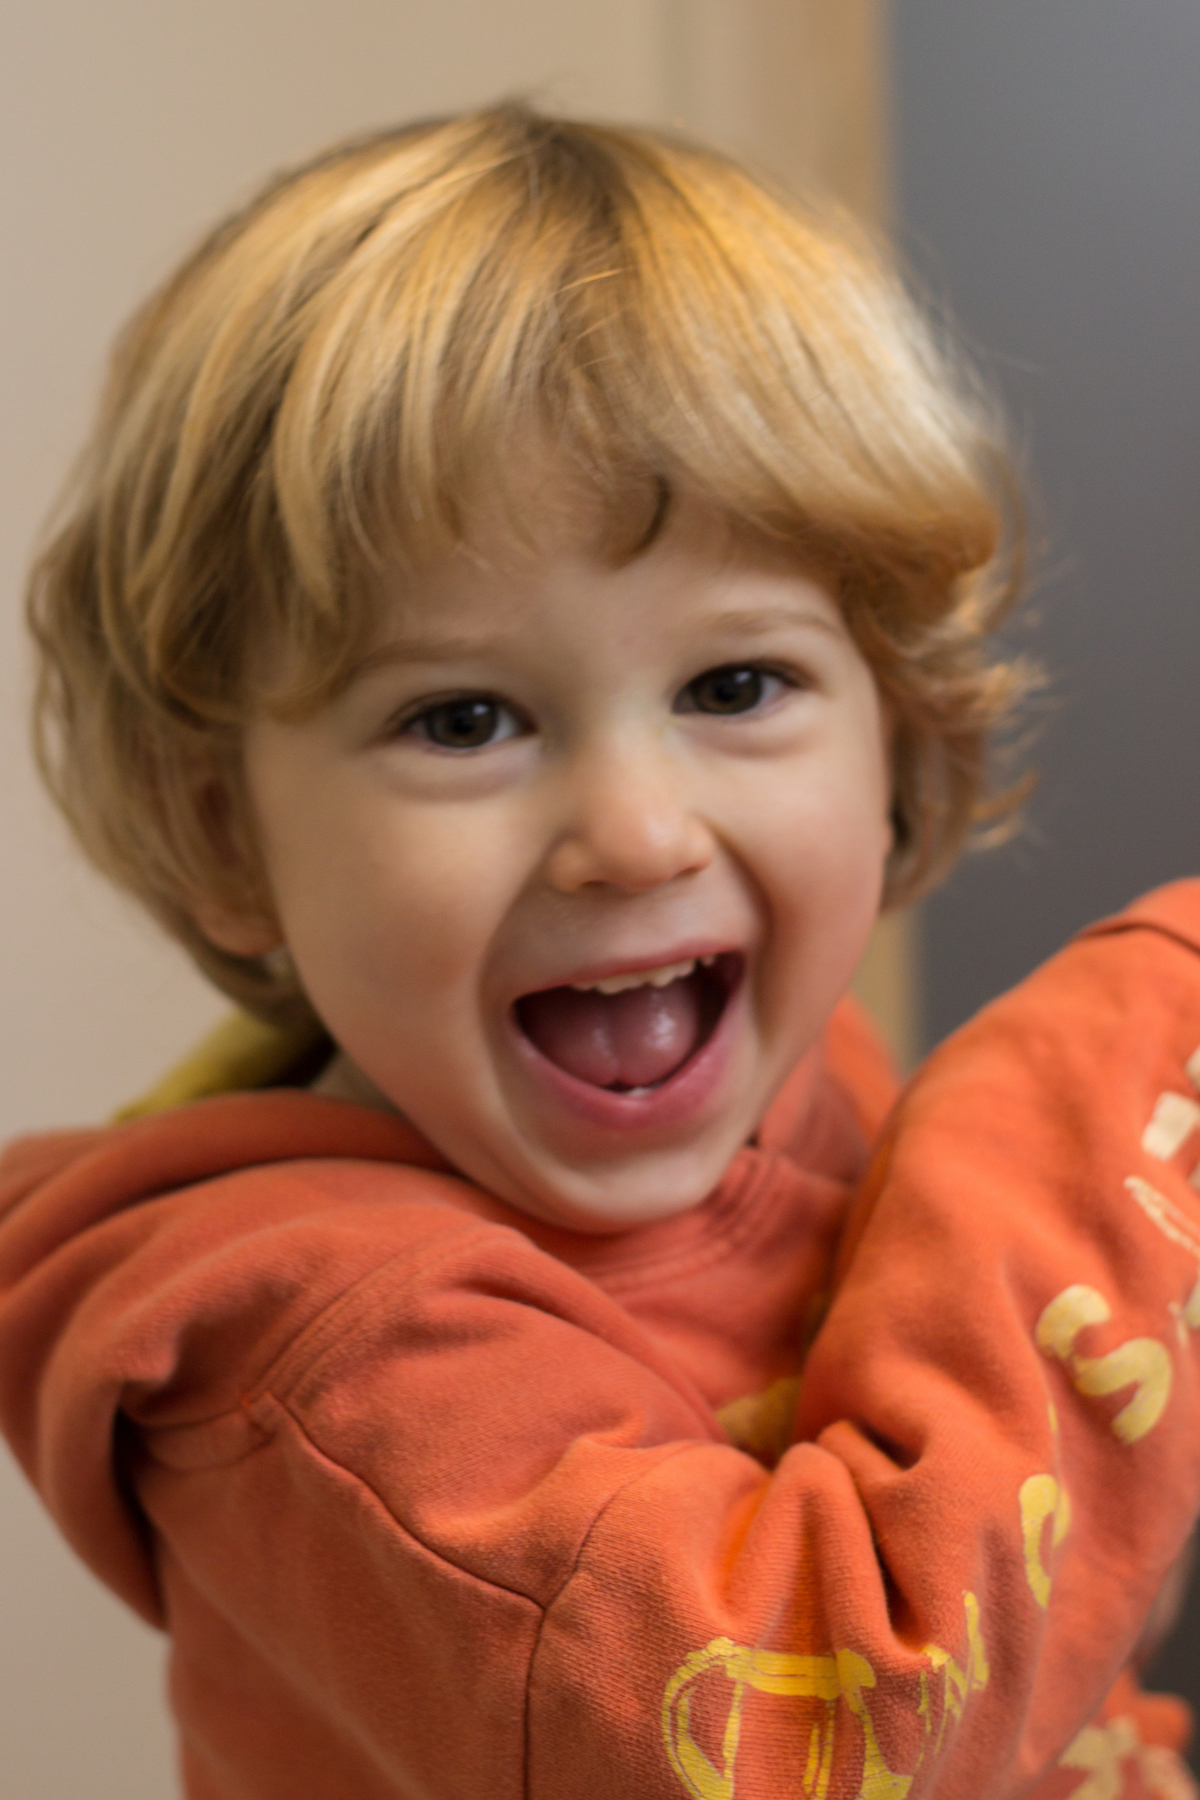 'Yay I did it' potty learning toddler smiling - nipitinthebud.co.uk